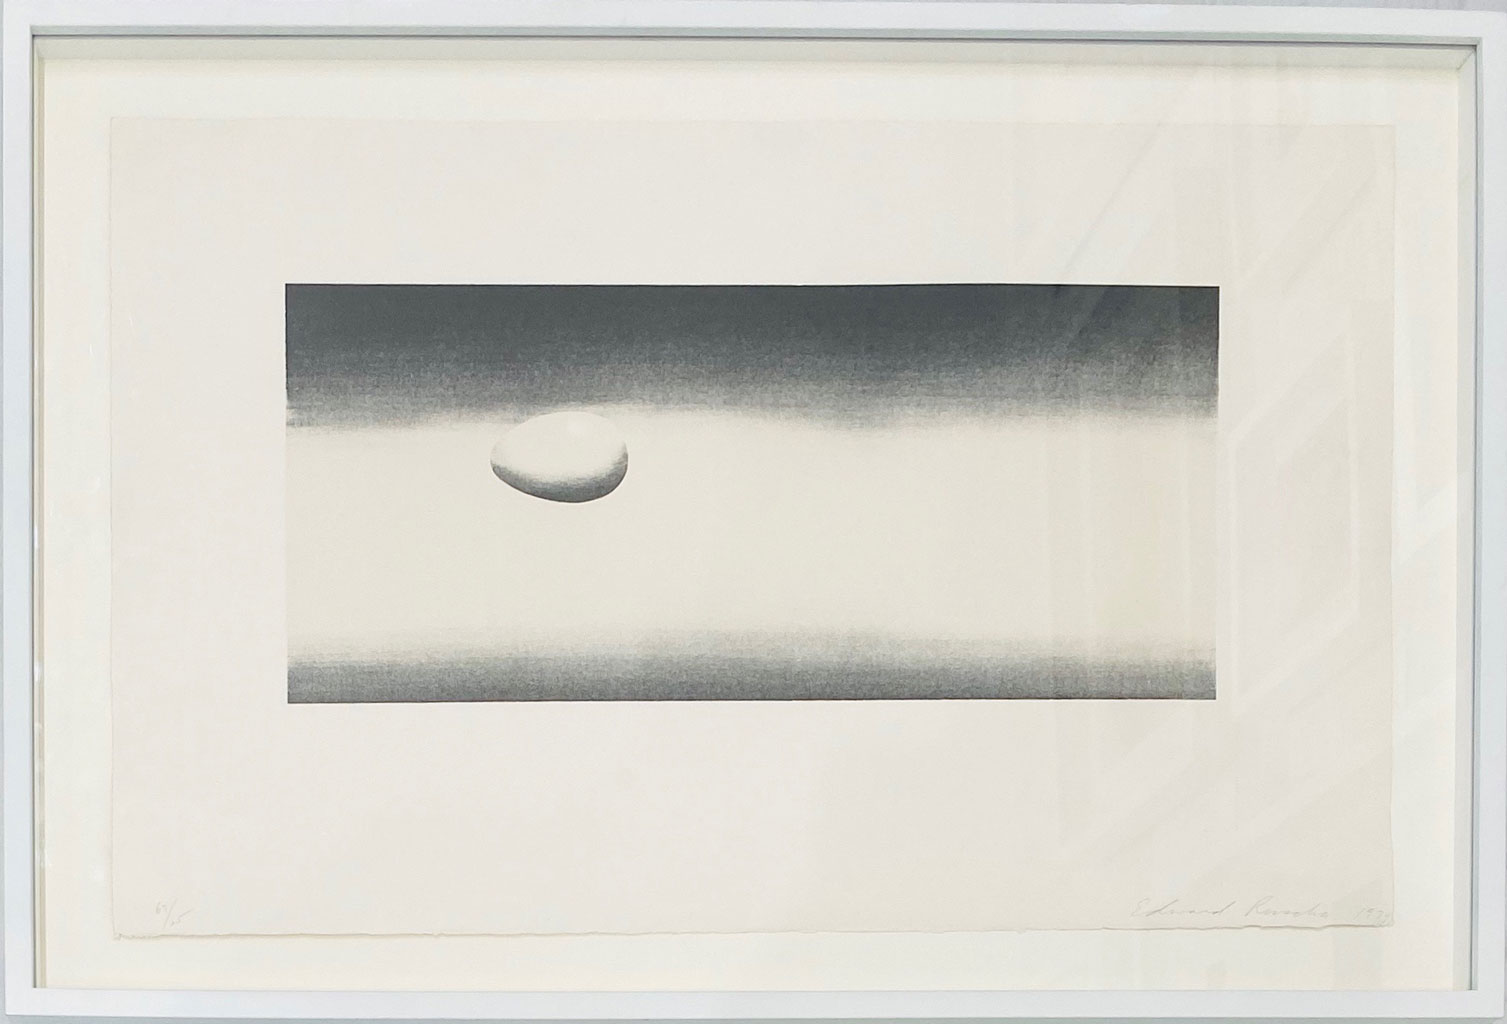 Egg (from The Domestic Tranquility Series) by Ed Ruscha